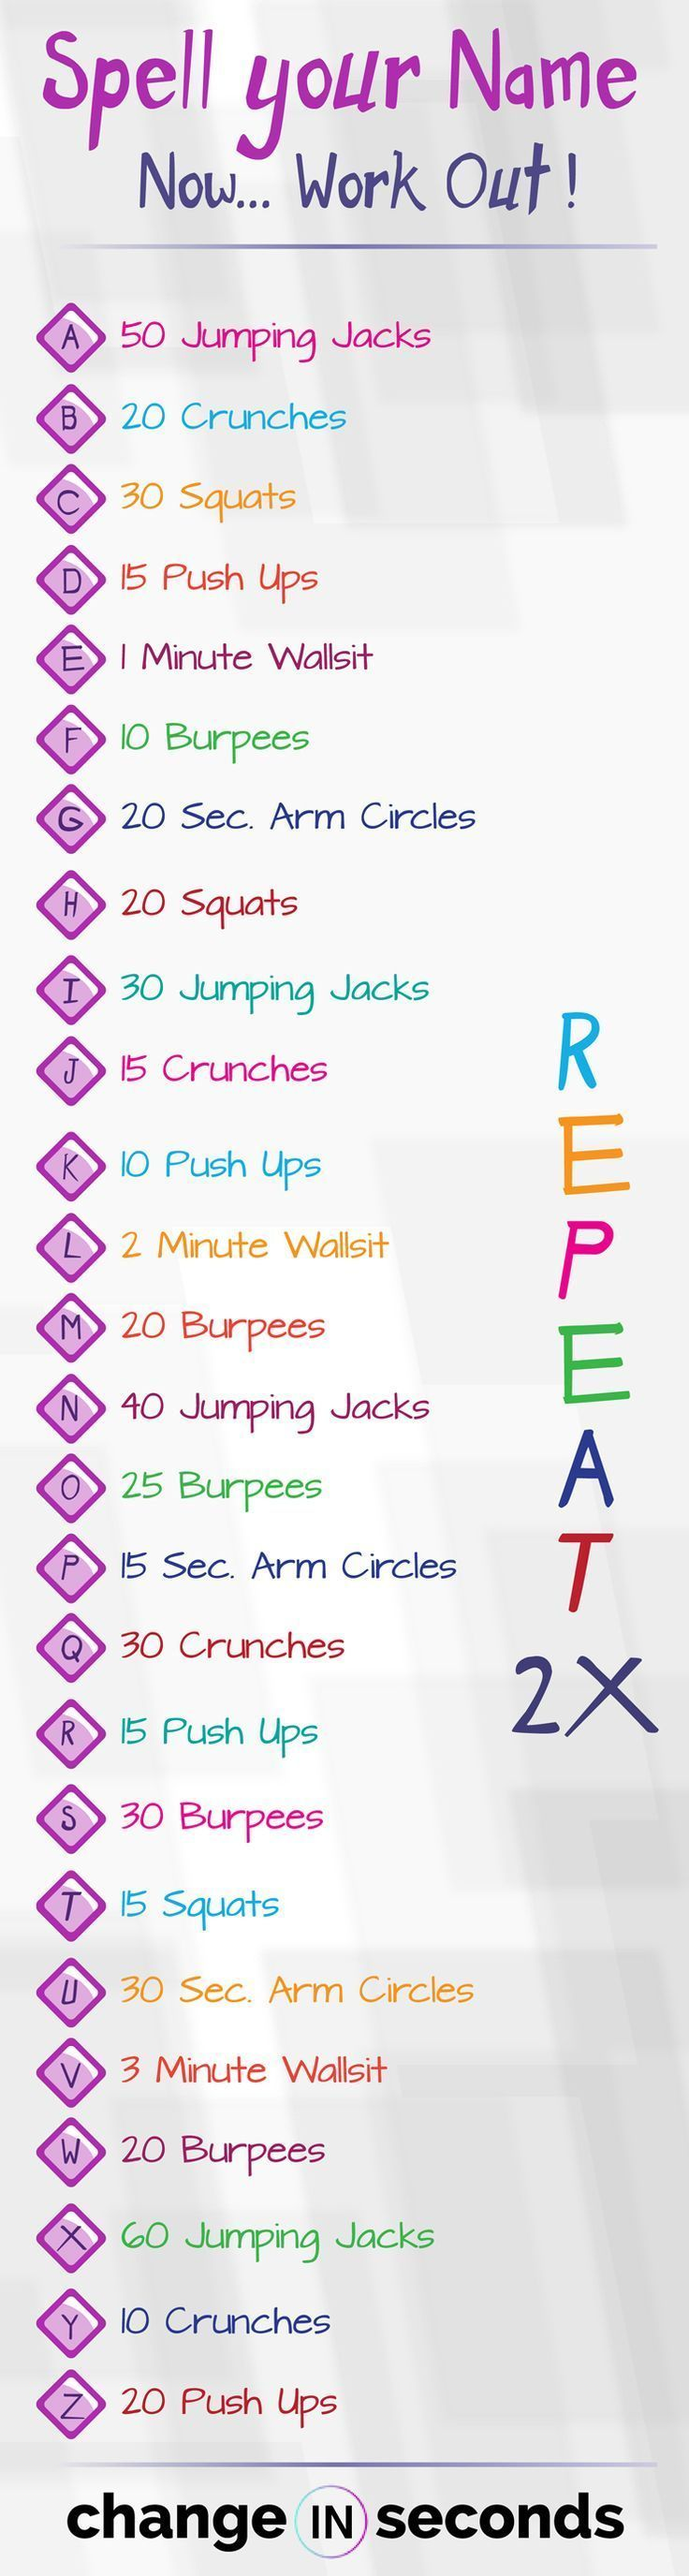 Spell Your Name Workout Schnell in Form kommen (PDF